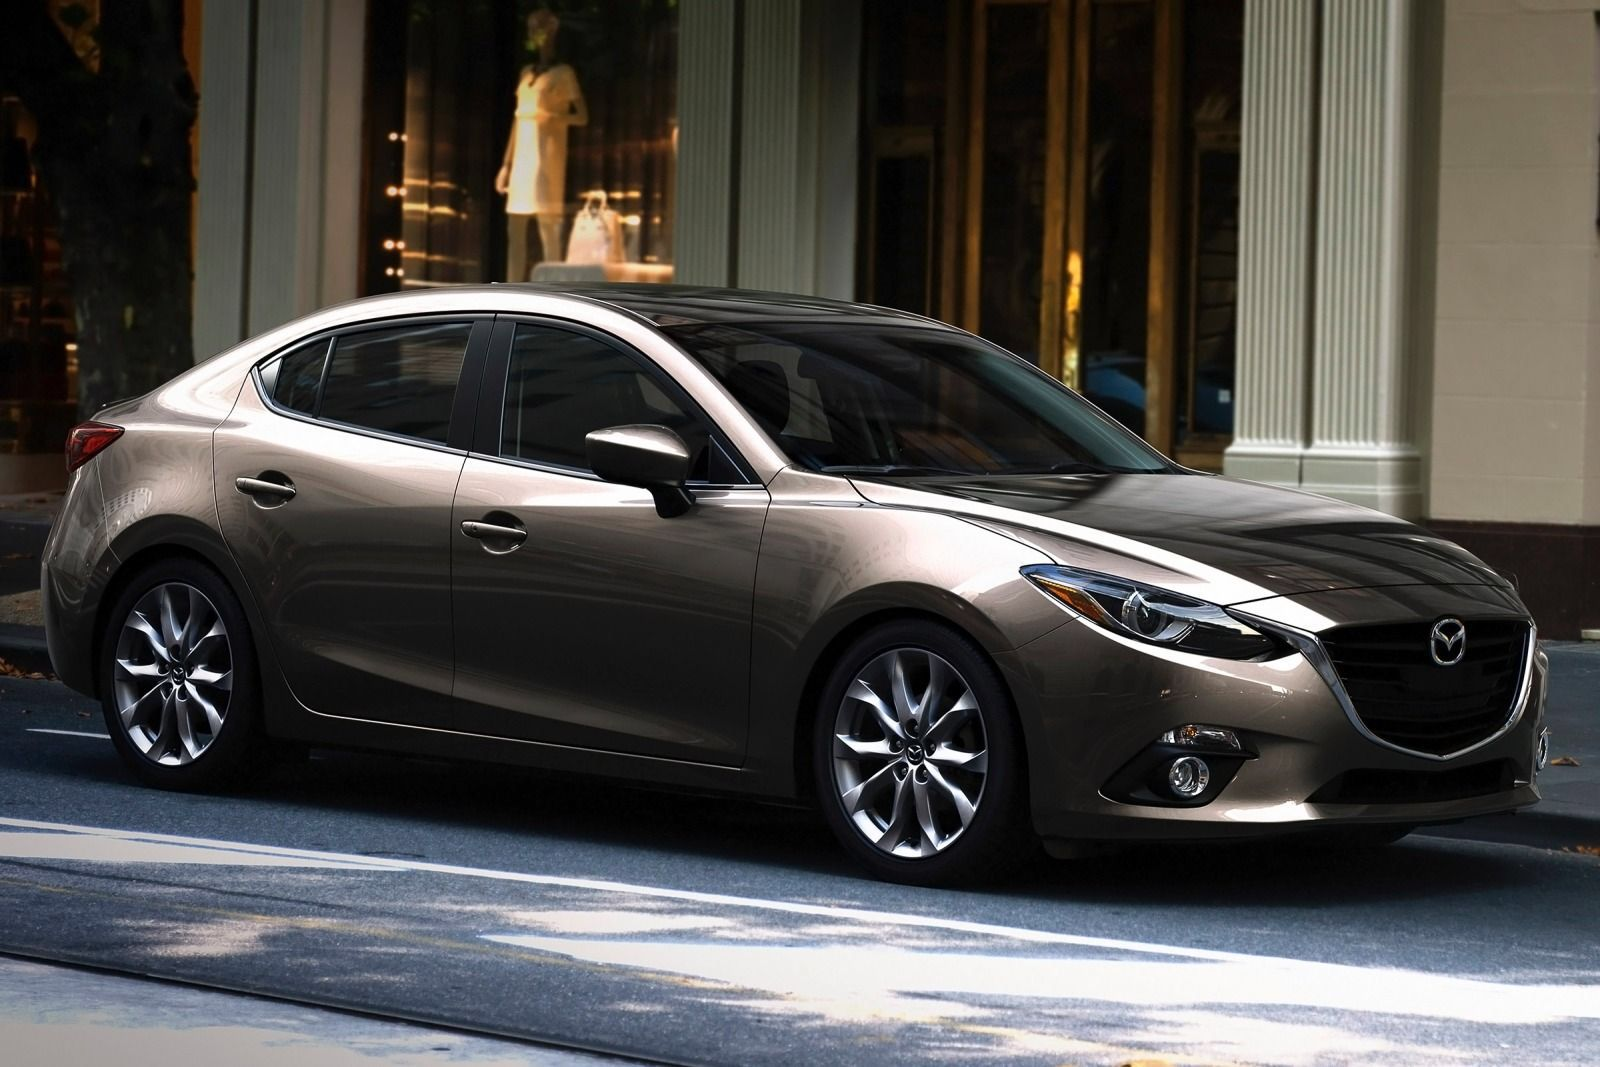 Top 25 best mazda 3 sedan ideas on pinterest mazda 3 mazda 3 hatchback and mazda 3 black